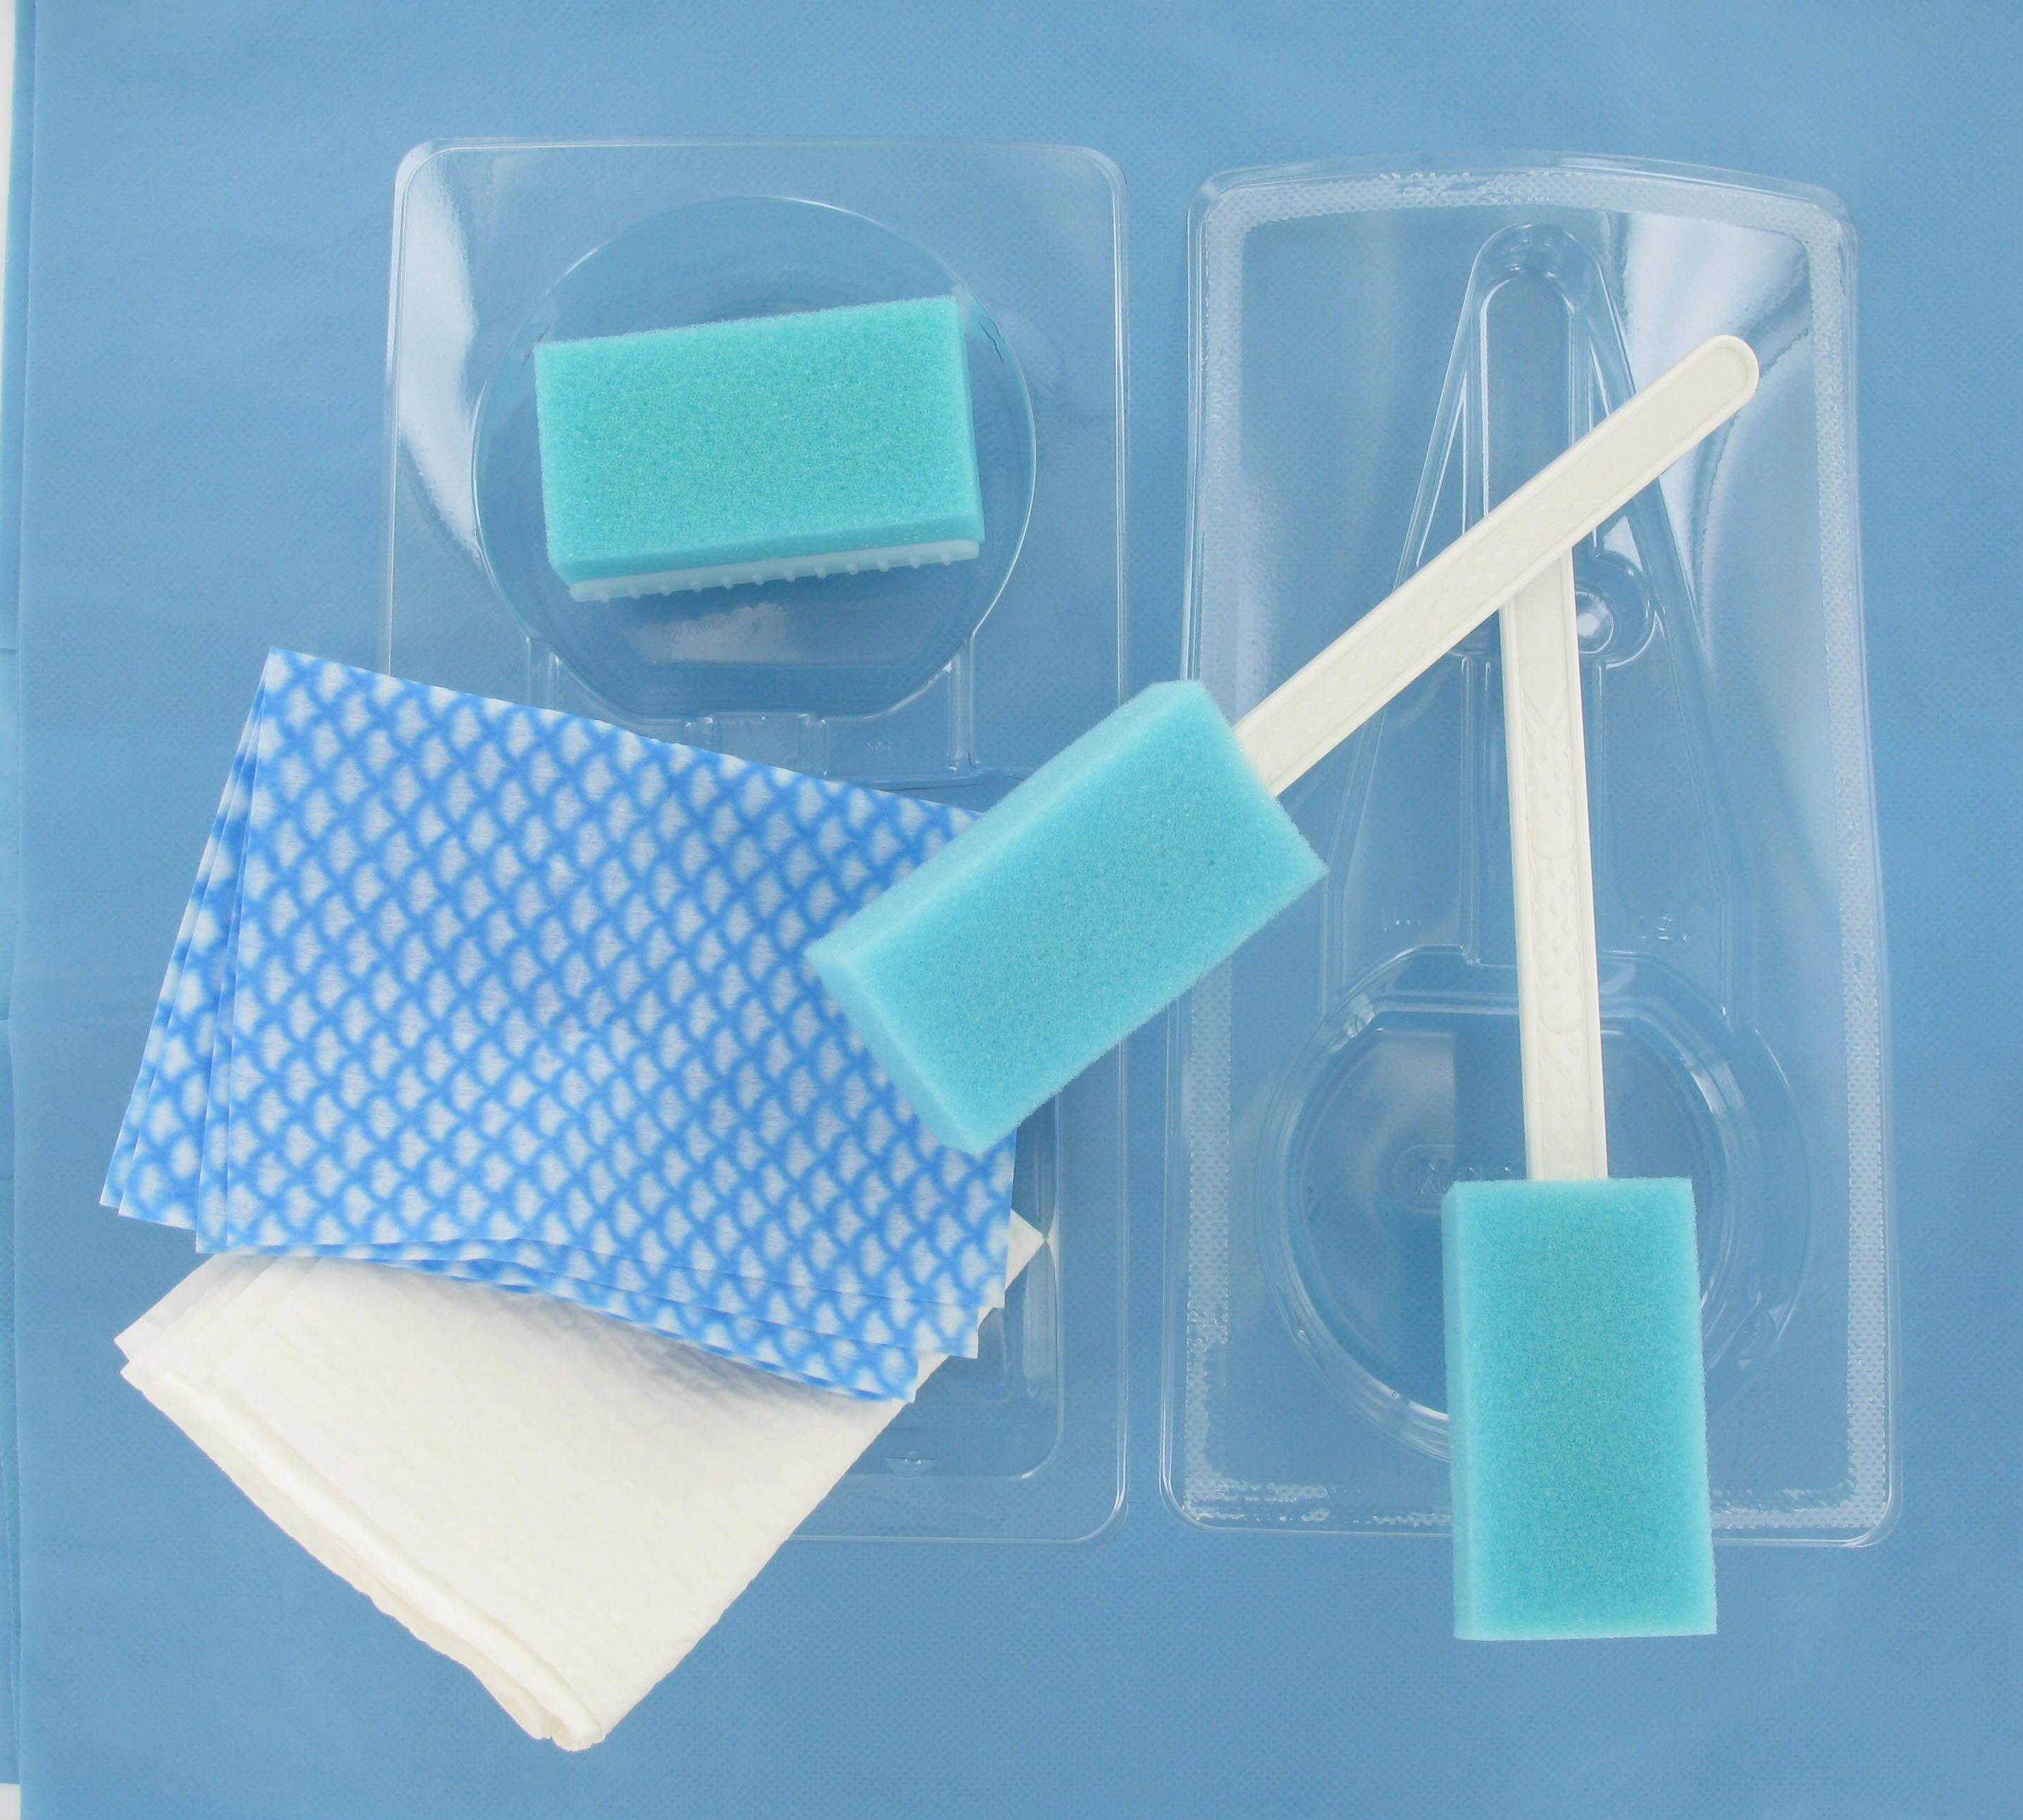 p sterile knee details drapes smms one disposable hospital packs arthroscopy drape surgical components for material pack